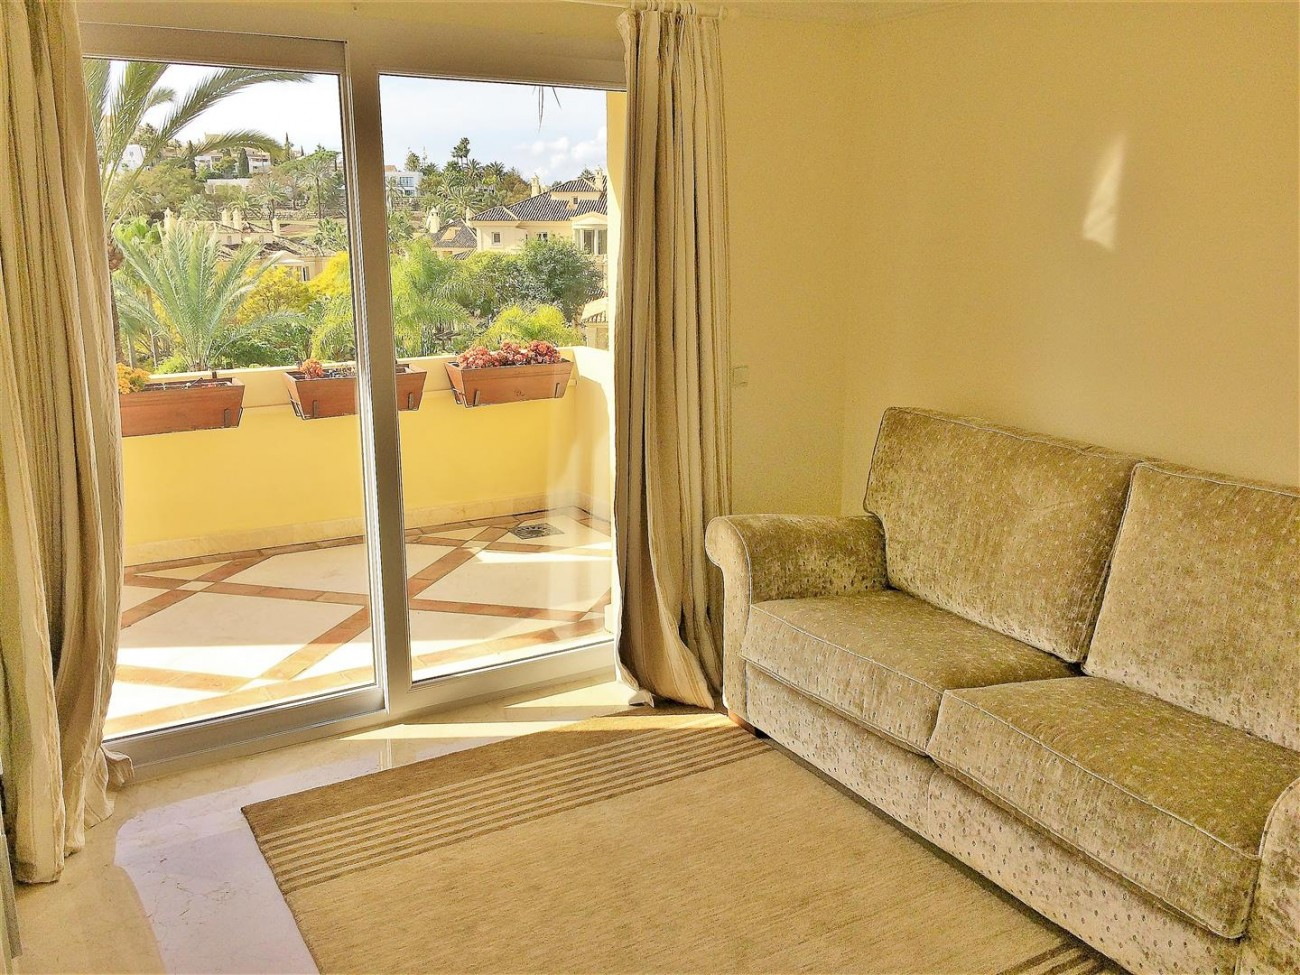 Penthouse for sale Las Alamandas Nueva Andalucia Marbella Spain (29) (Large)